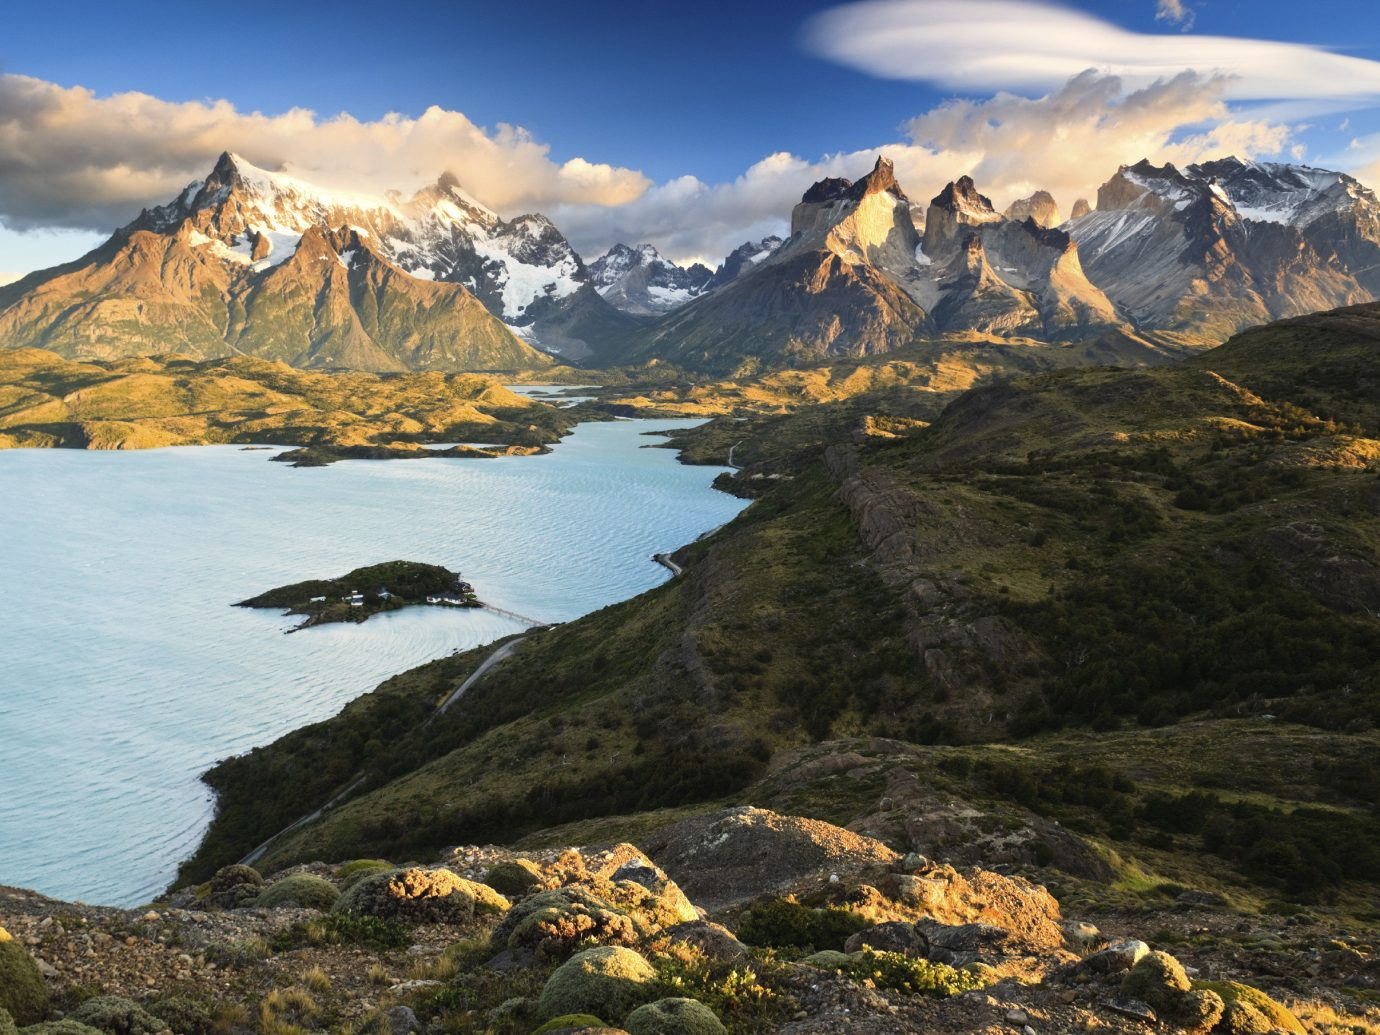 Breathtaking mountain range on the water in Patagonia